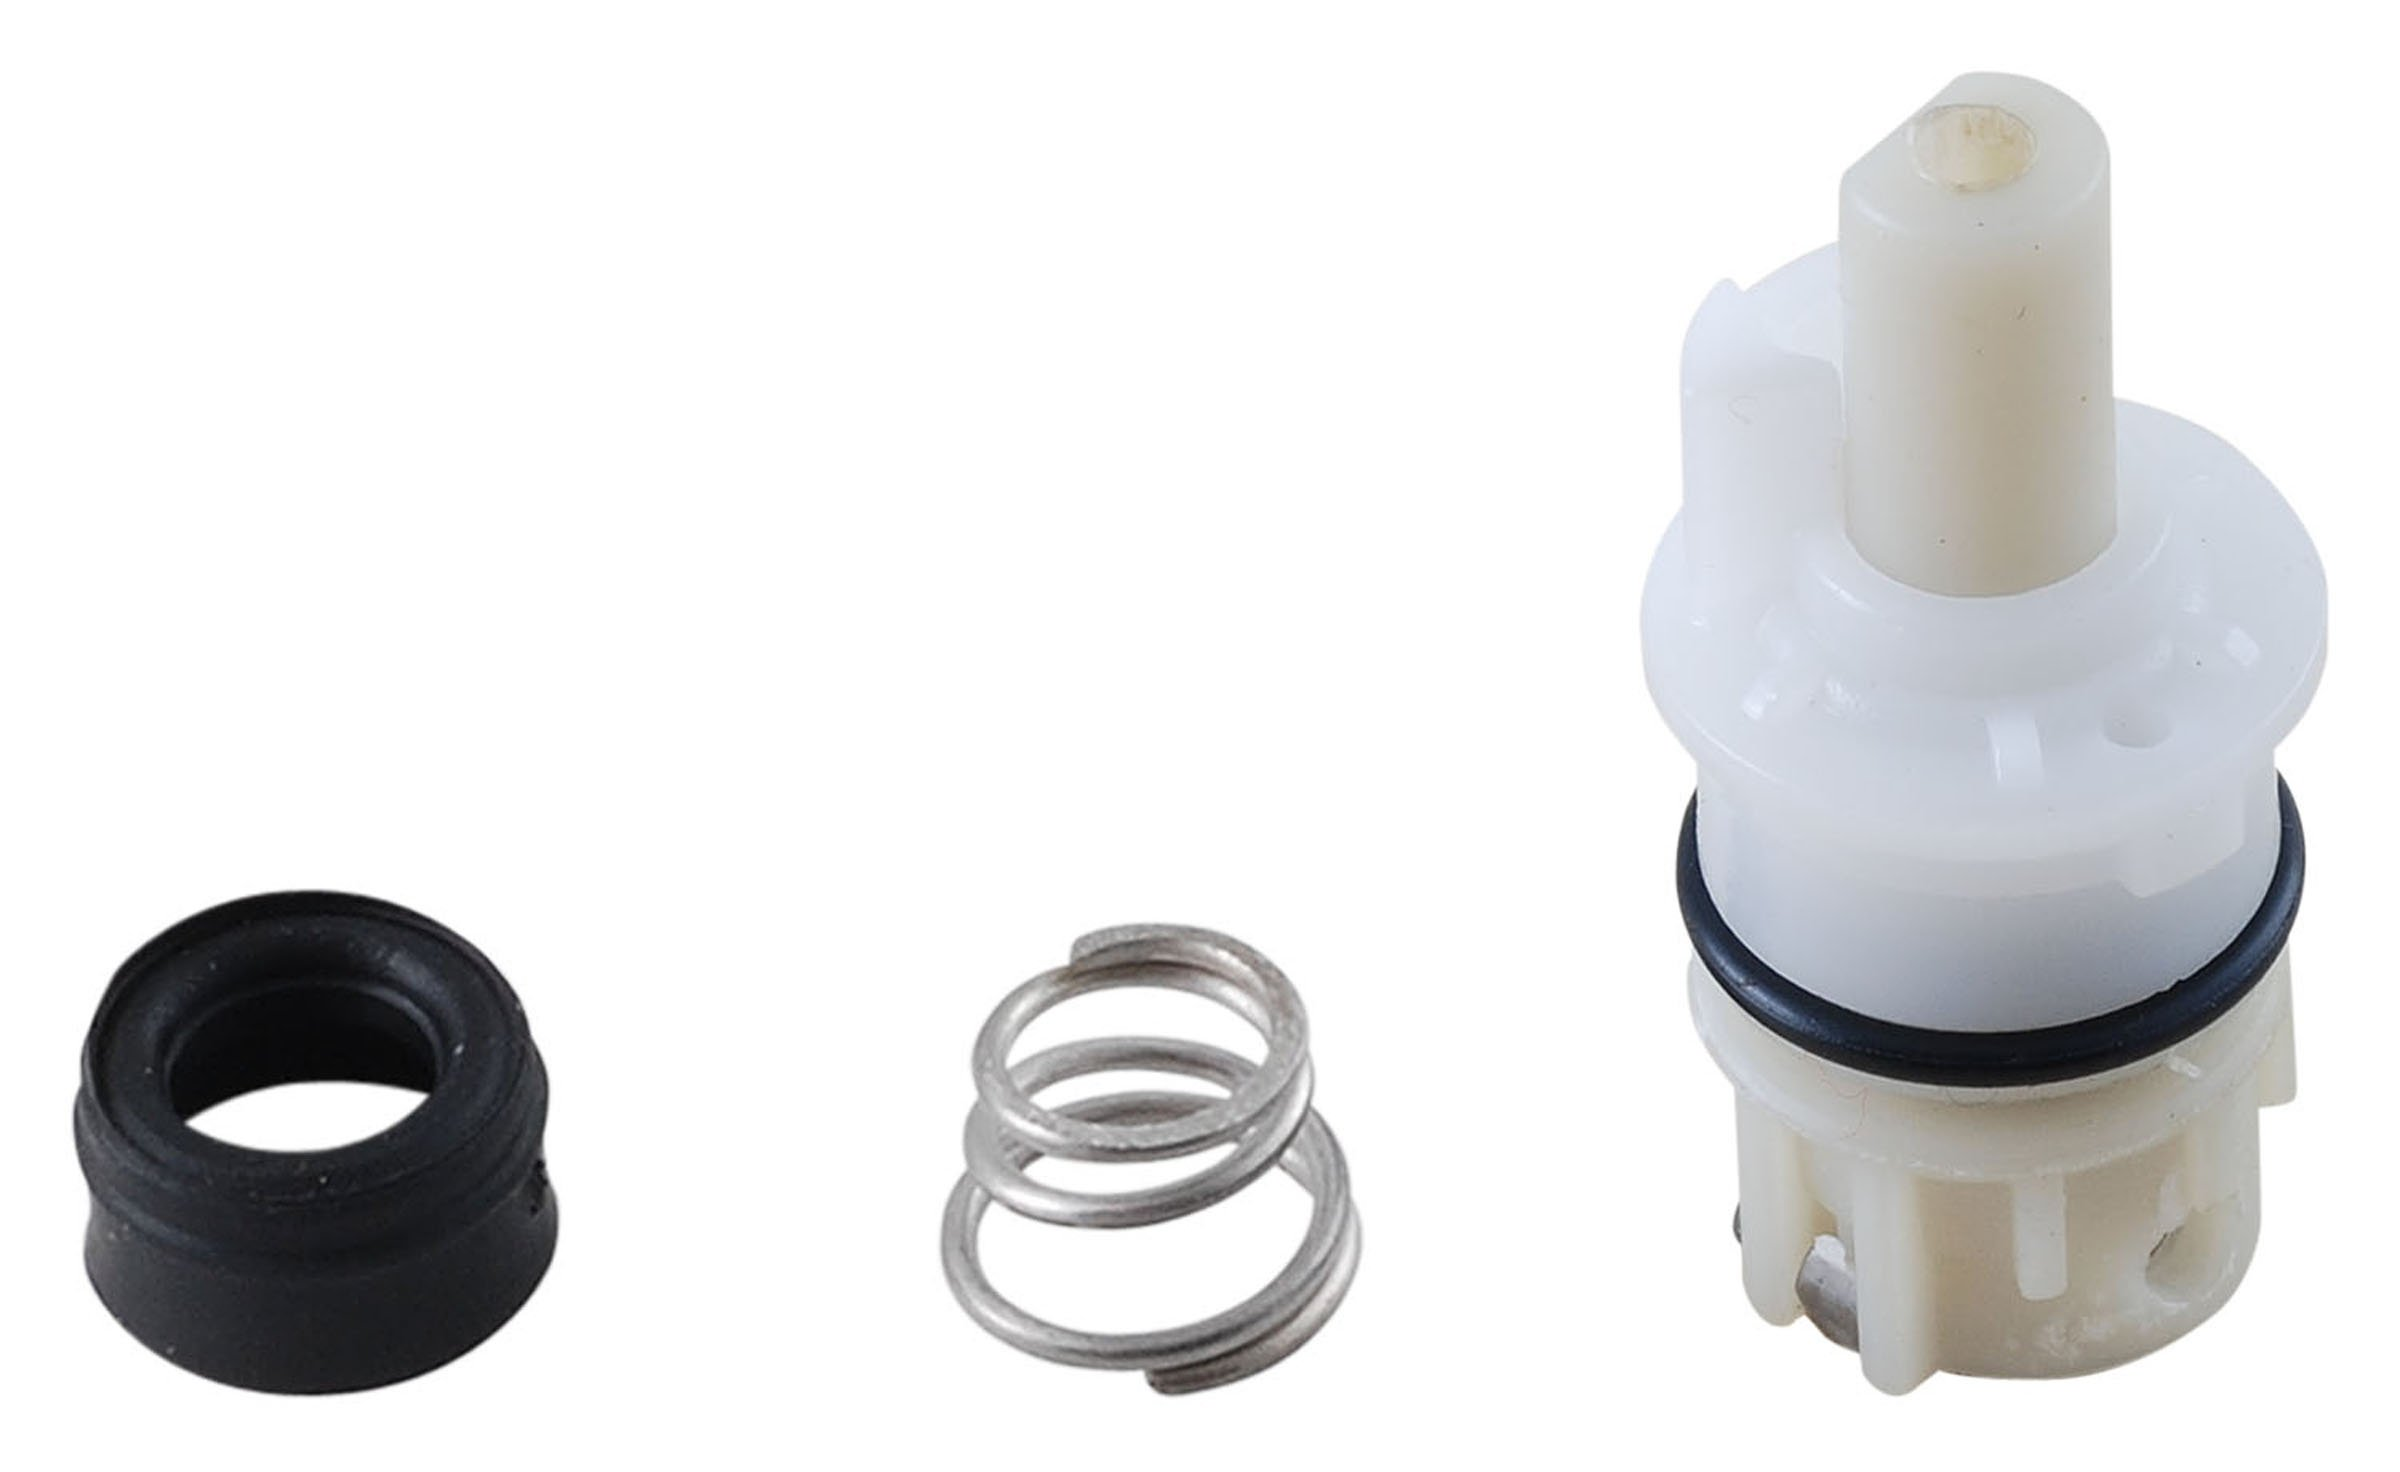 LDR 500 3121 Two Handle Washerless Cartridge for Delta, Peerless, LDR, Tuscany, Exquisite Faucets by LDR Industries